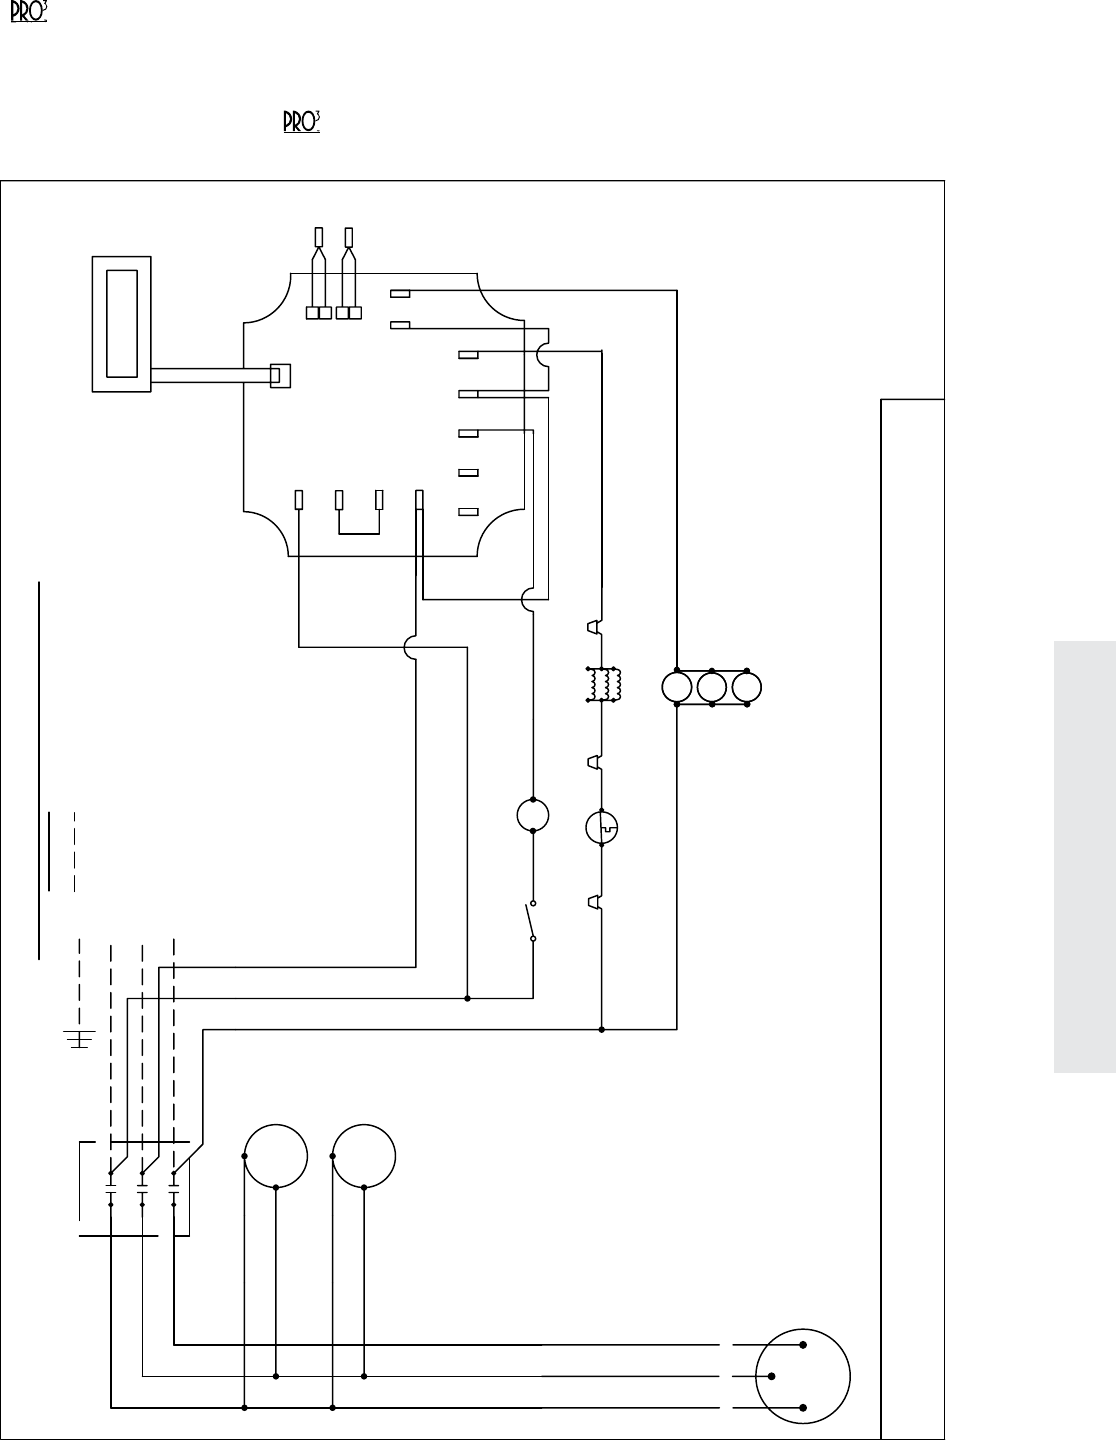 heatcraft wiring diagrams heatcraft image wiring page 19 of heatcraft refrigeration products refrigerator h im 82b on heatcraft wiring diagrams